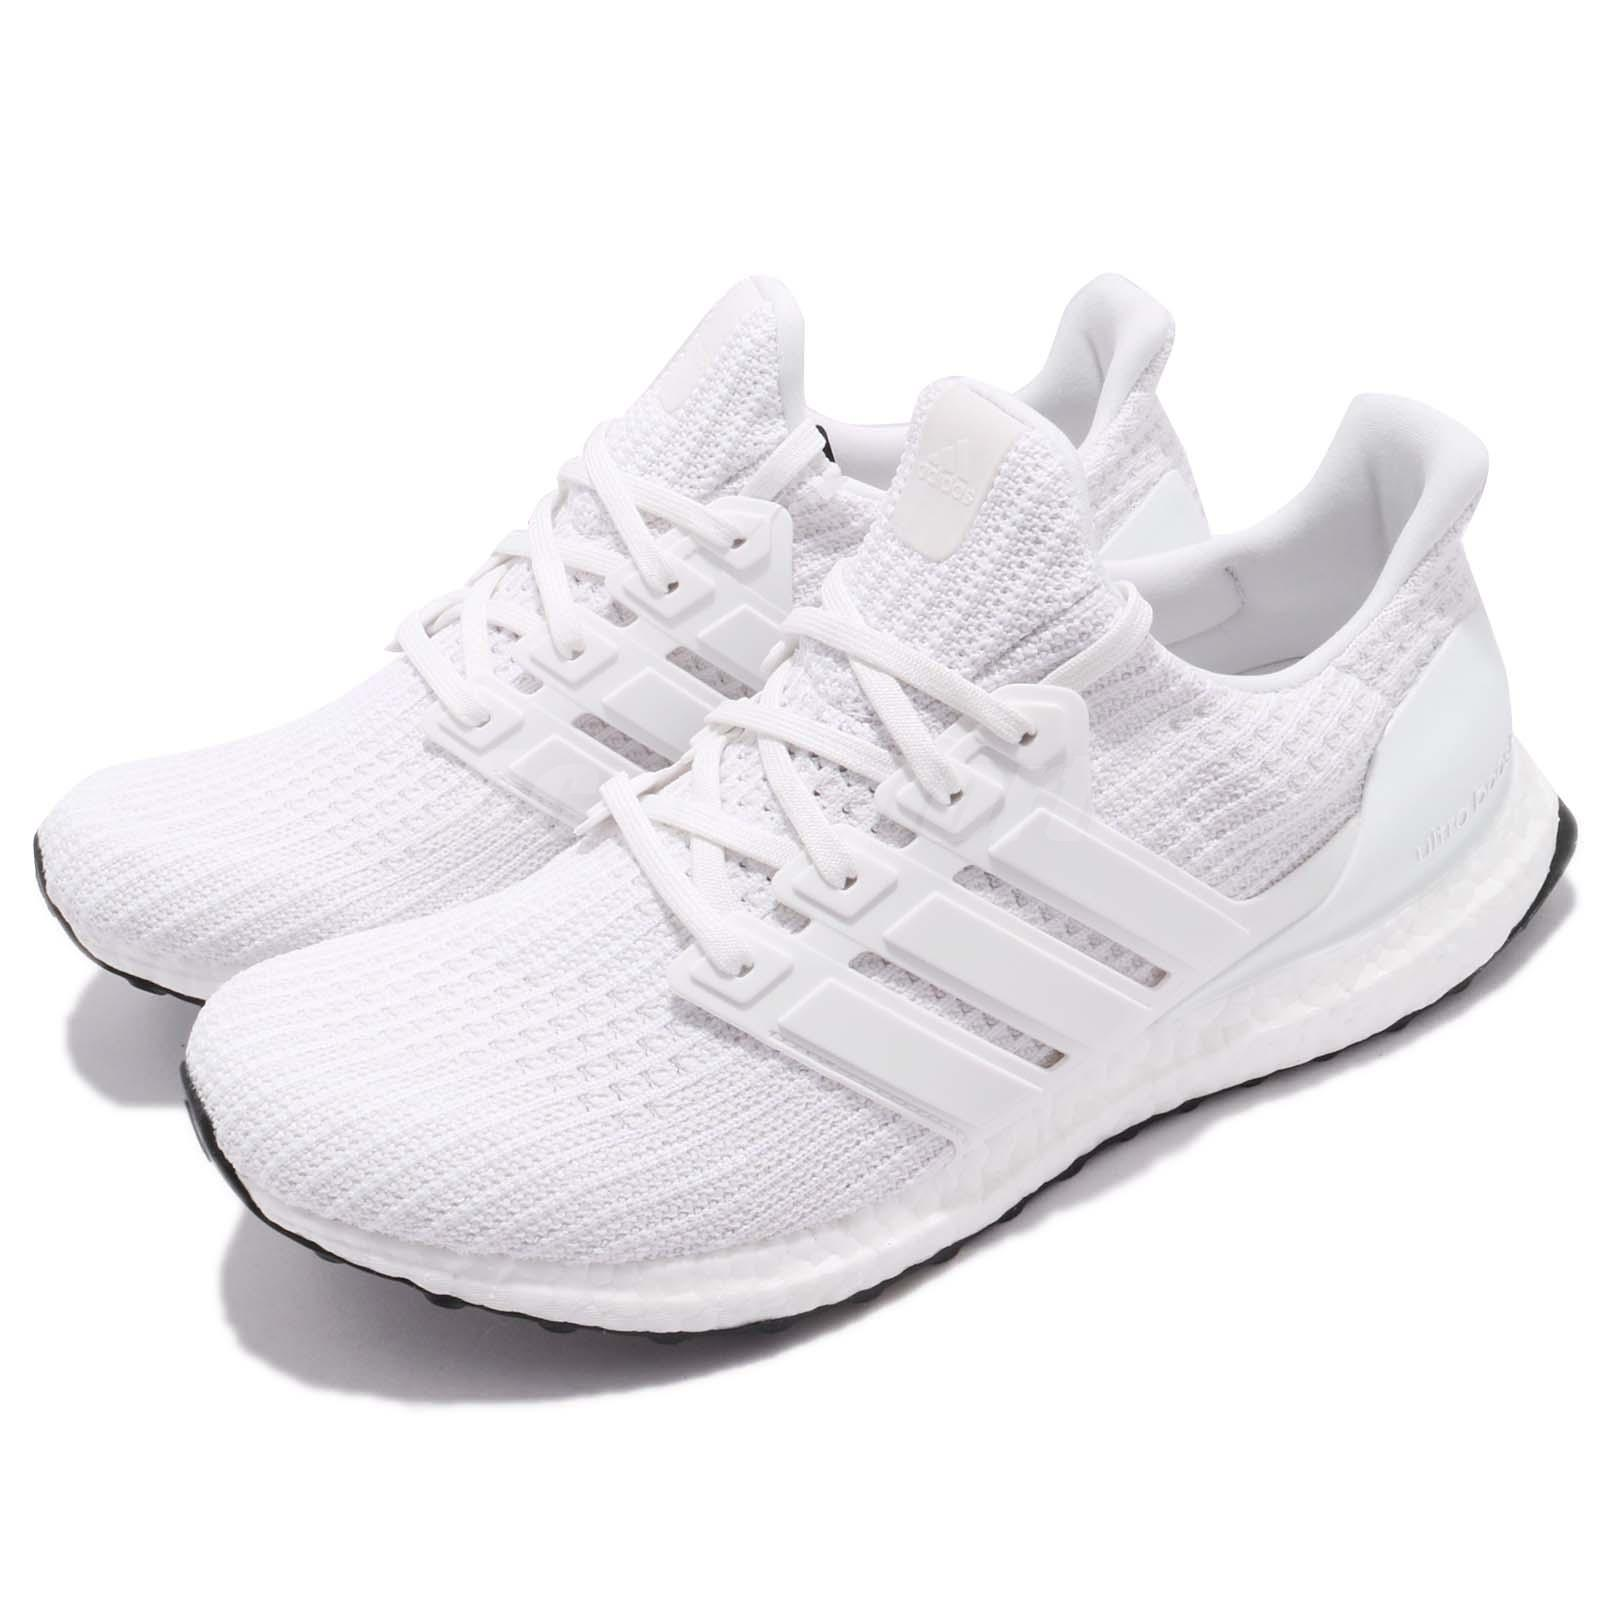 quality design da9cc 6822c Details about adidas UltraBOOST 4.0 Continental Footwear White Men Running  Shoes BB6168